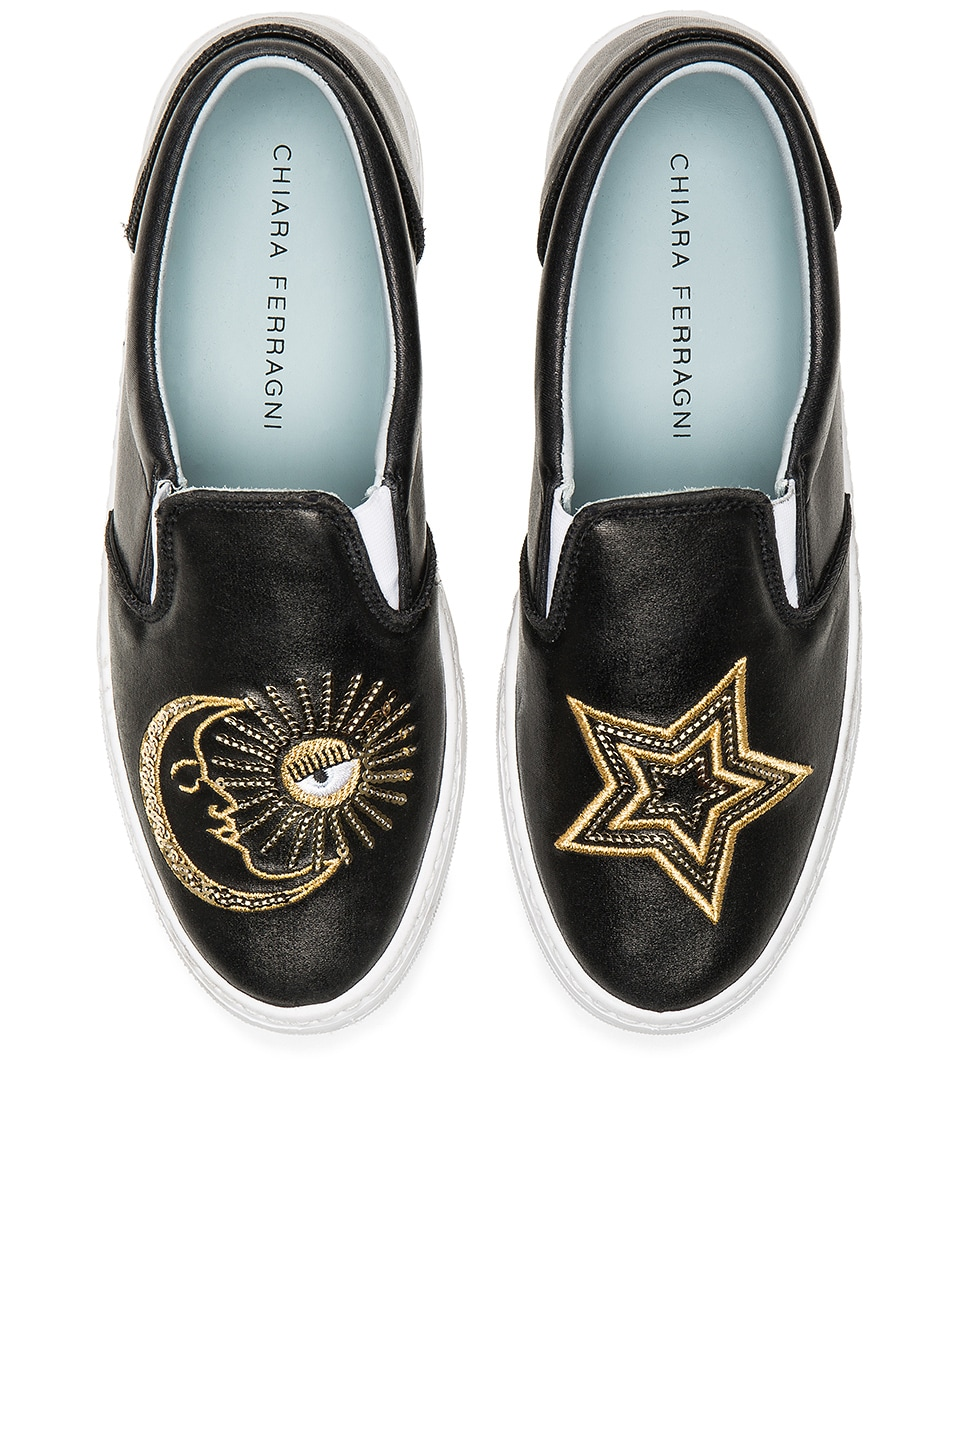 Chiara Ferragni Starry Slip On Sneaker in Black